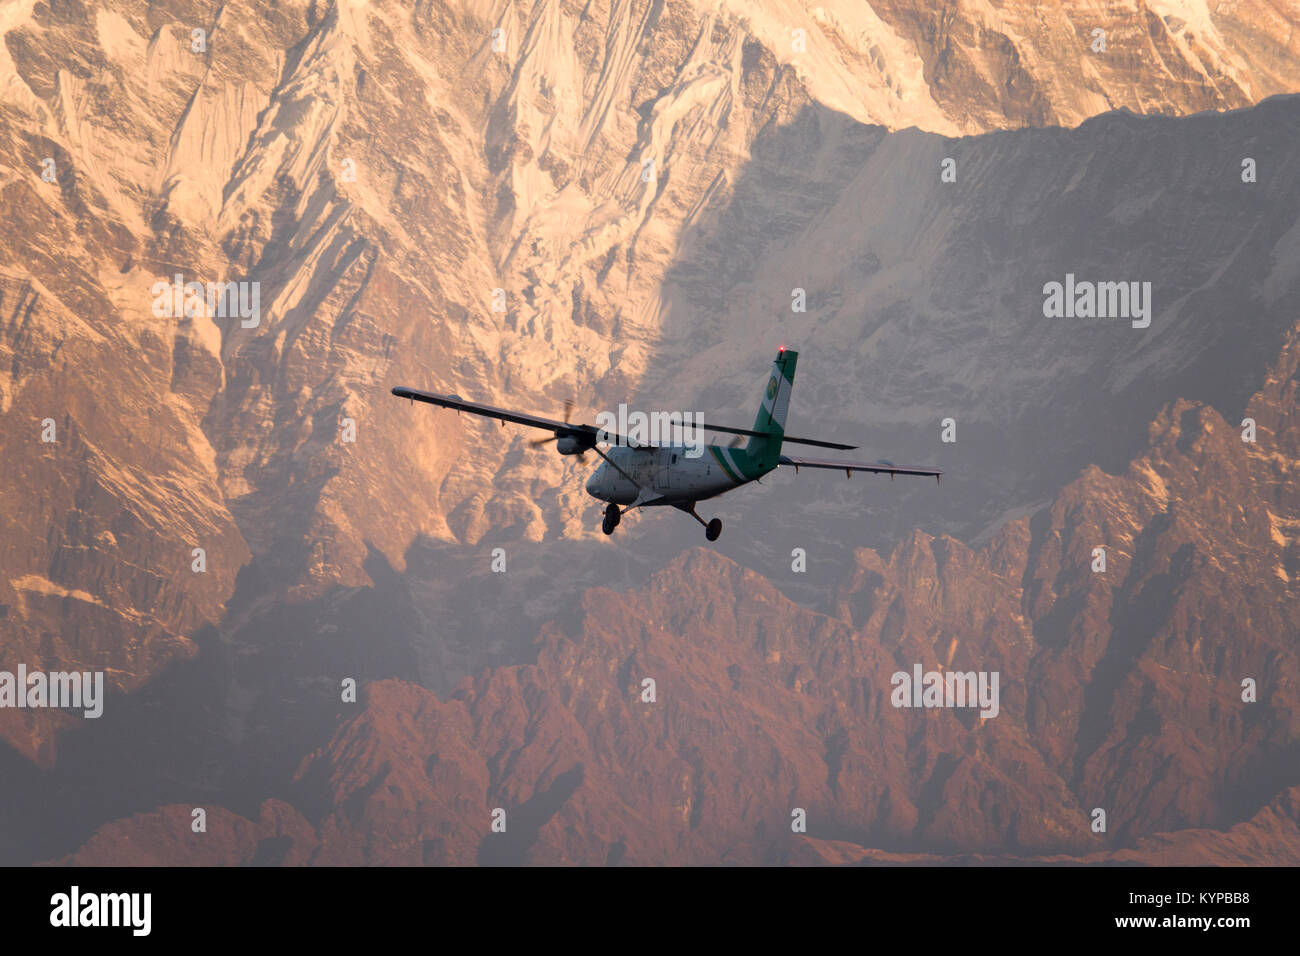 Tourist plane on sightseeing flight over the Annapurna mountains in Nepal - Stock Image